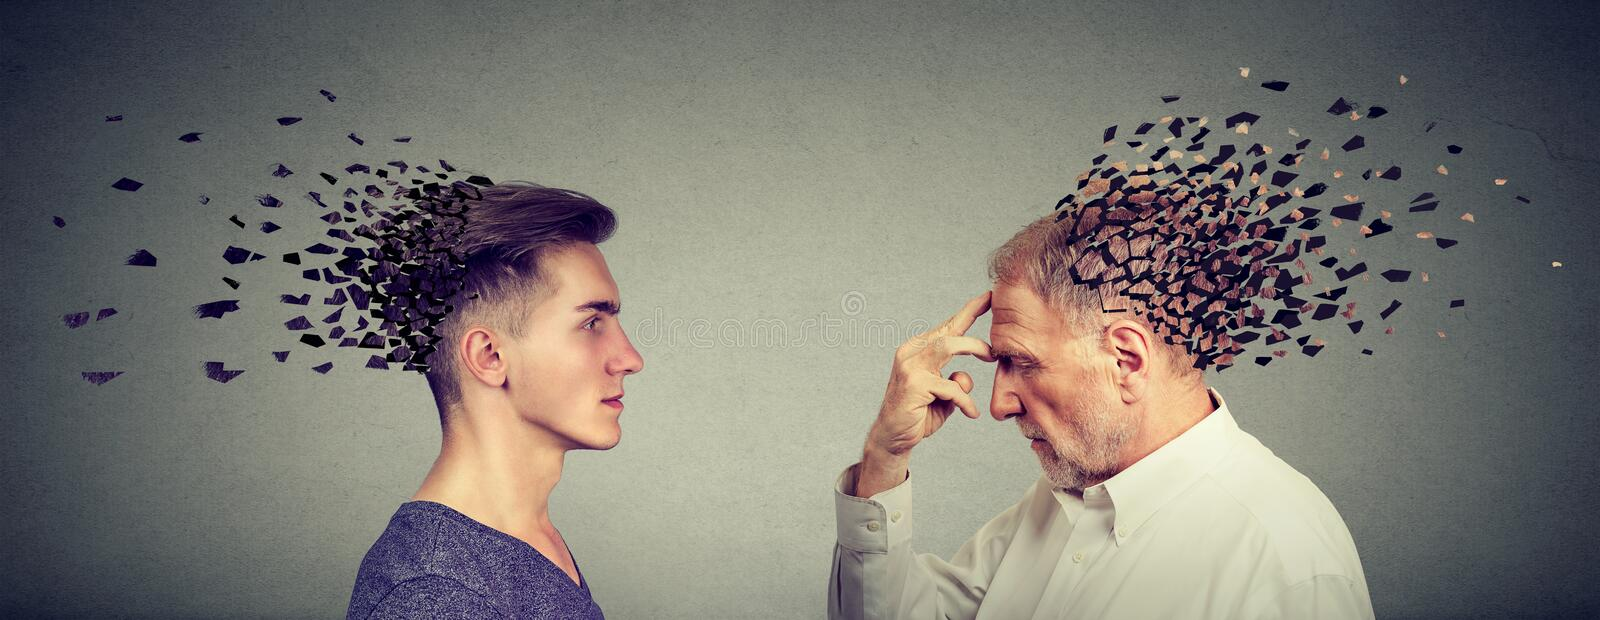 Memory loss due to dementia or brain damage. Side profile of young and senior men losing parts of head as symbol of decreased mind function royalty free stock image